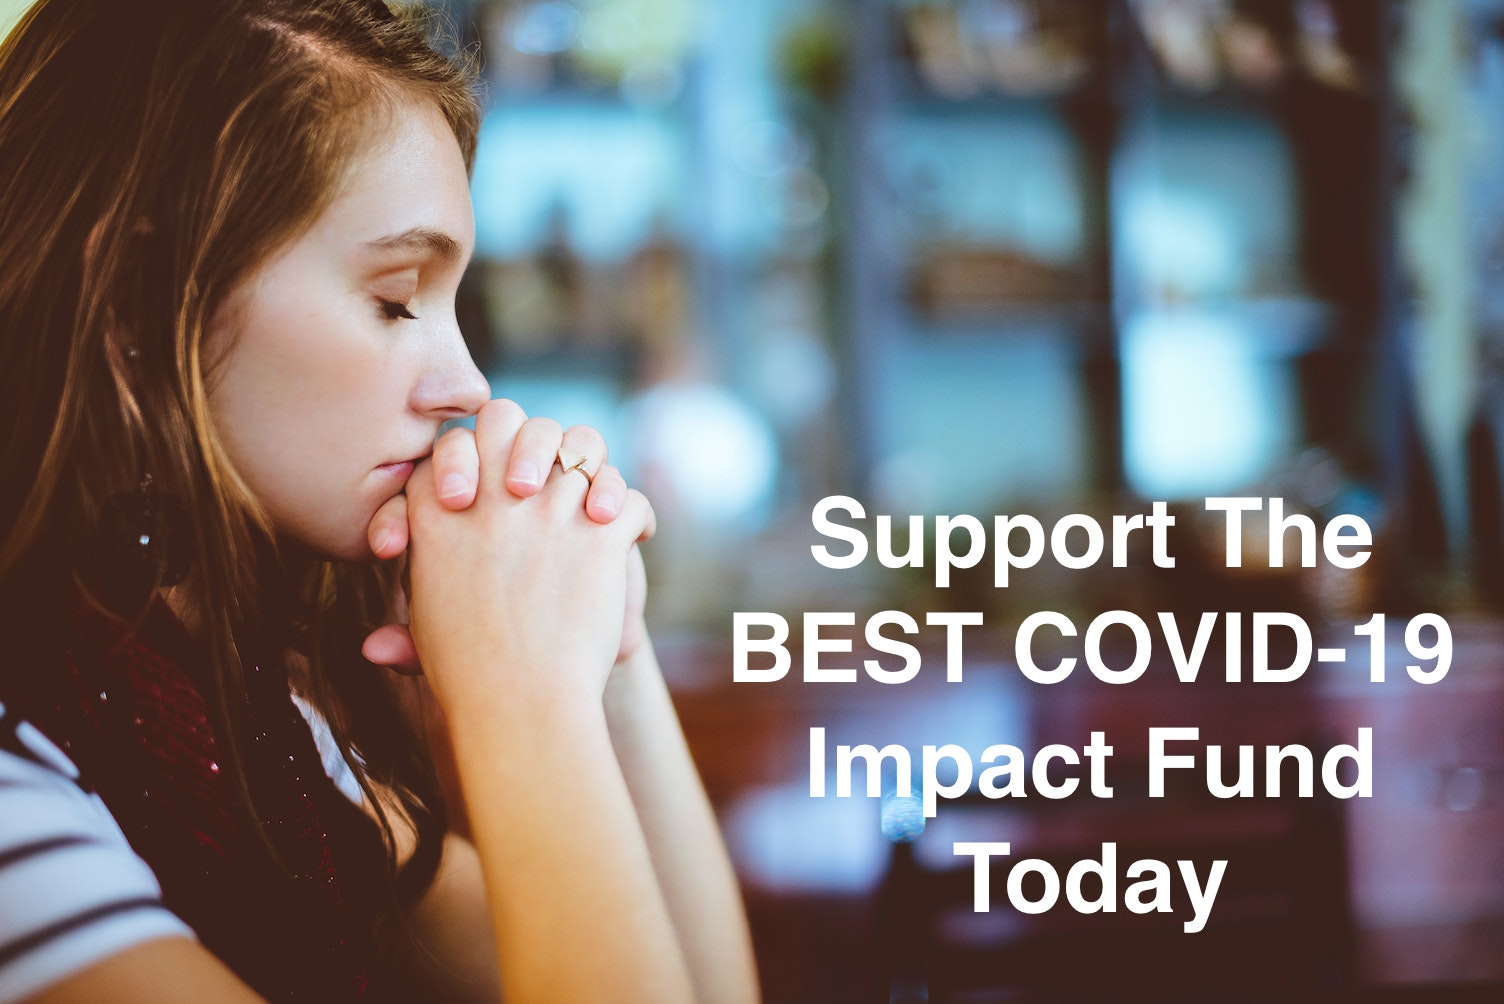 BEST Launches COVID-19 Impact Fund In Response To High Rate of Brain Injury and COVID-19